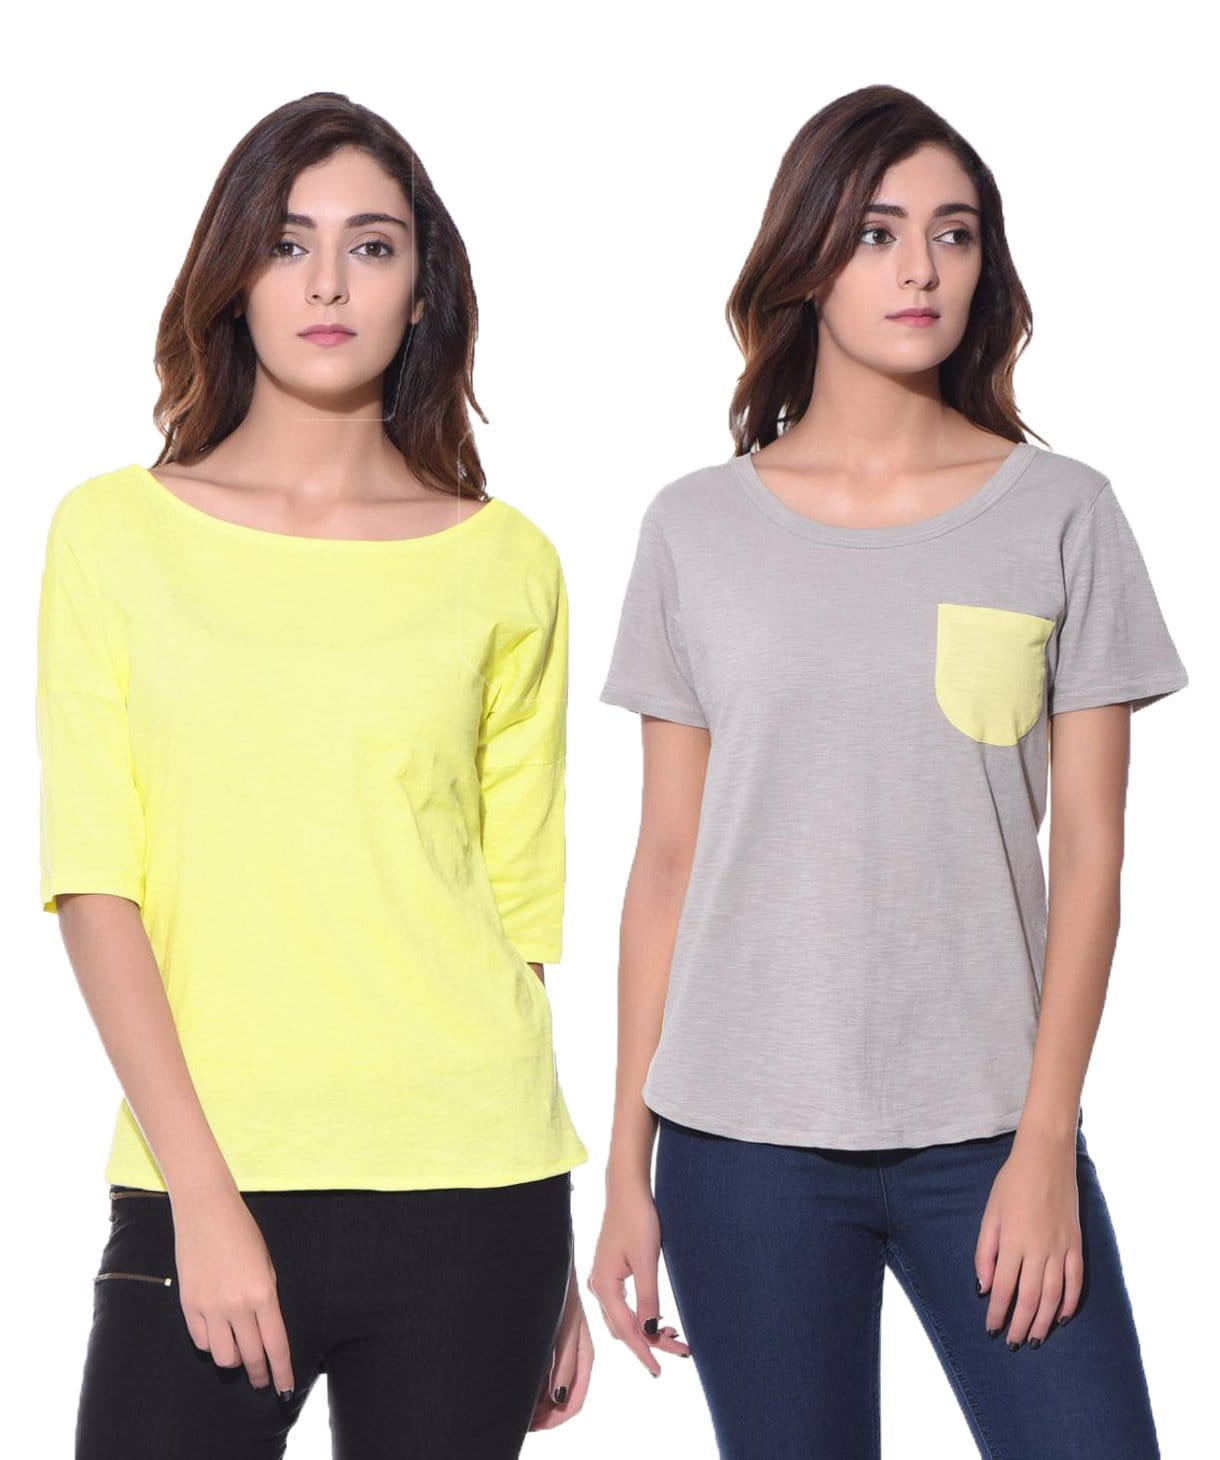 Uptownie The Morning to Evening T-Shirts Super Saver Combo 1 clearance sale